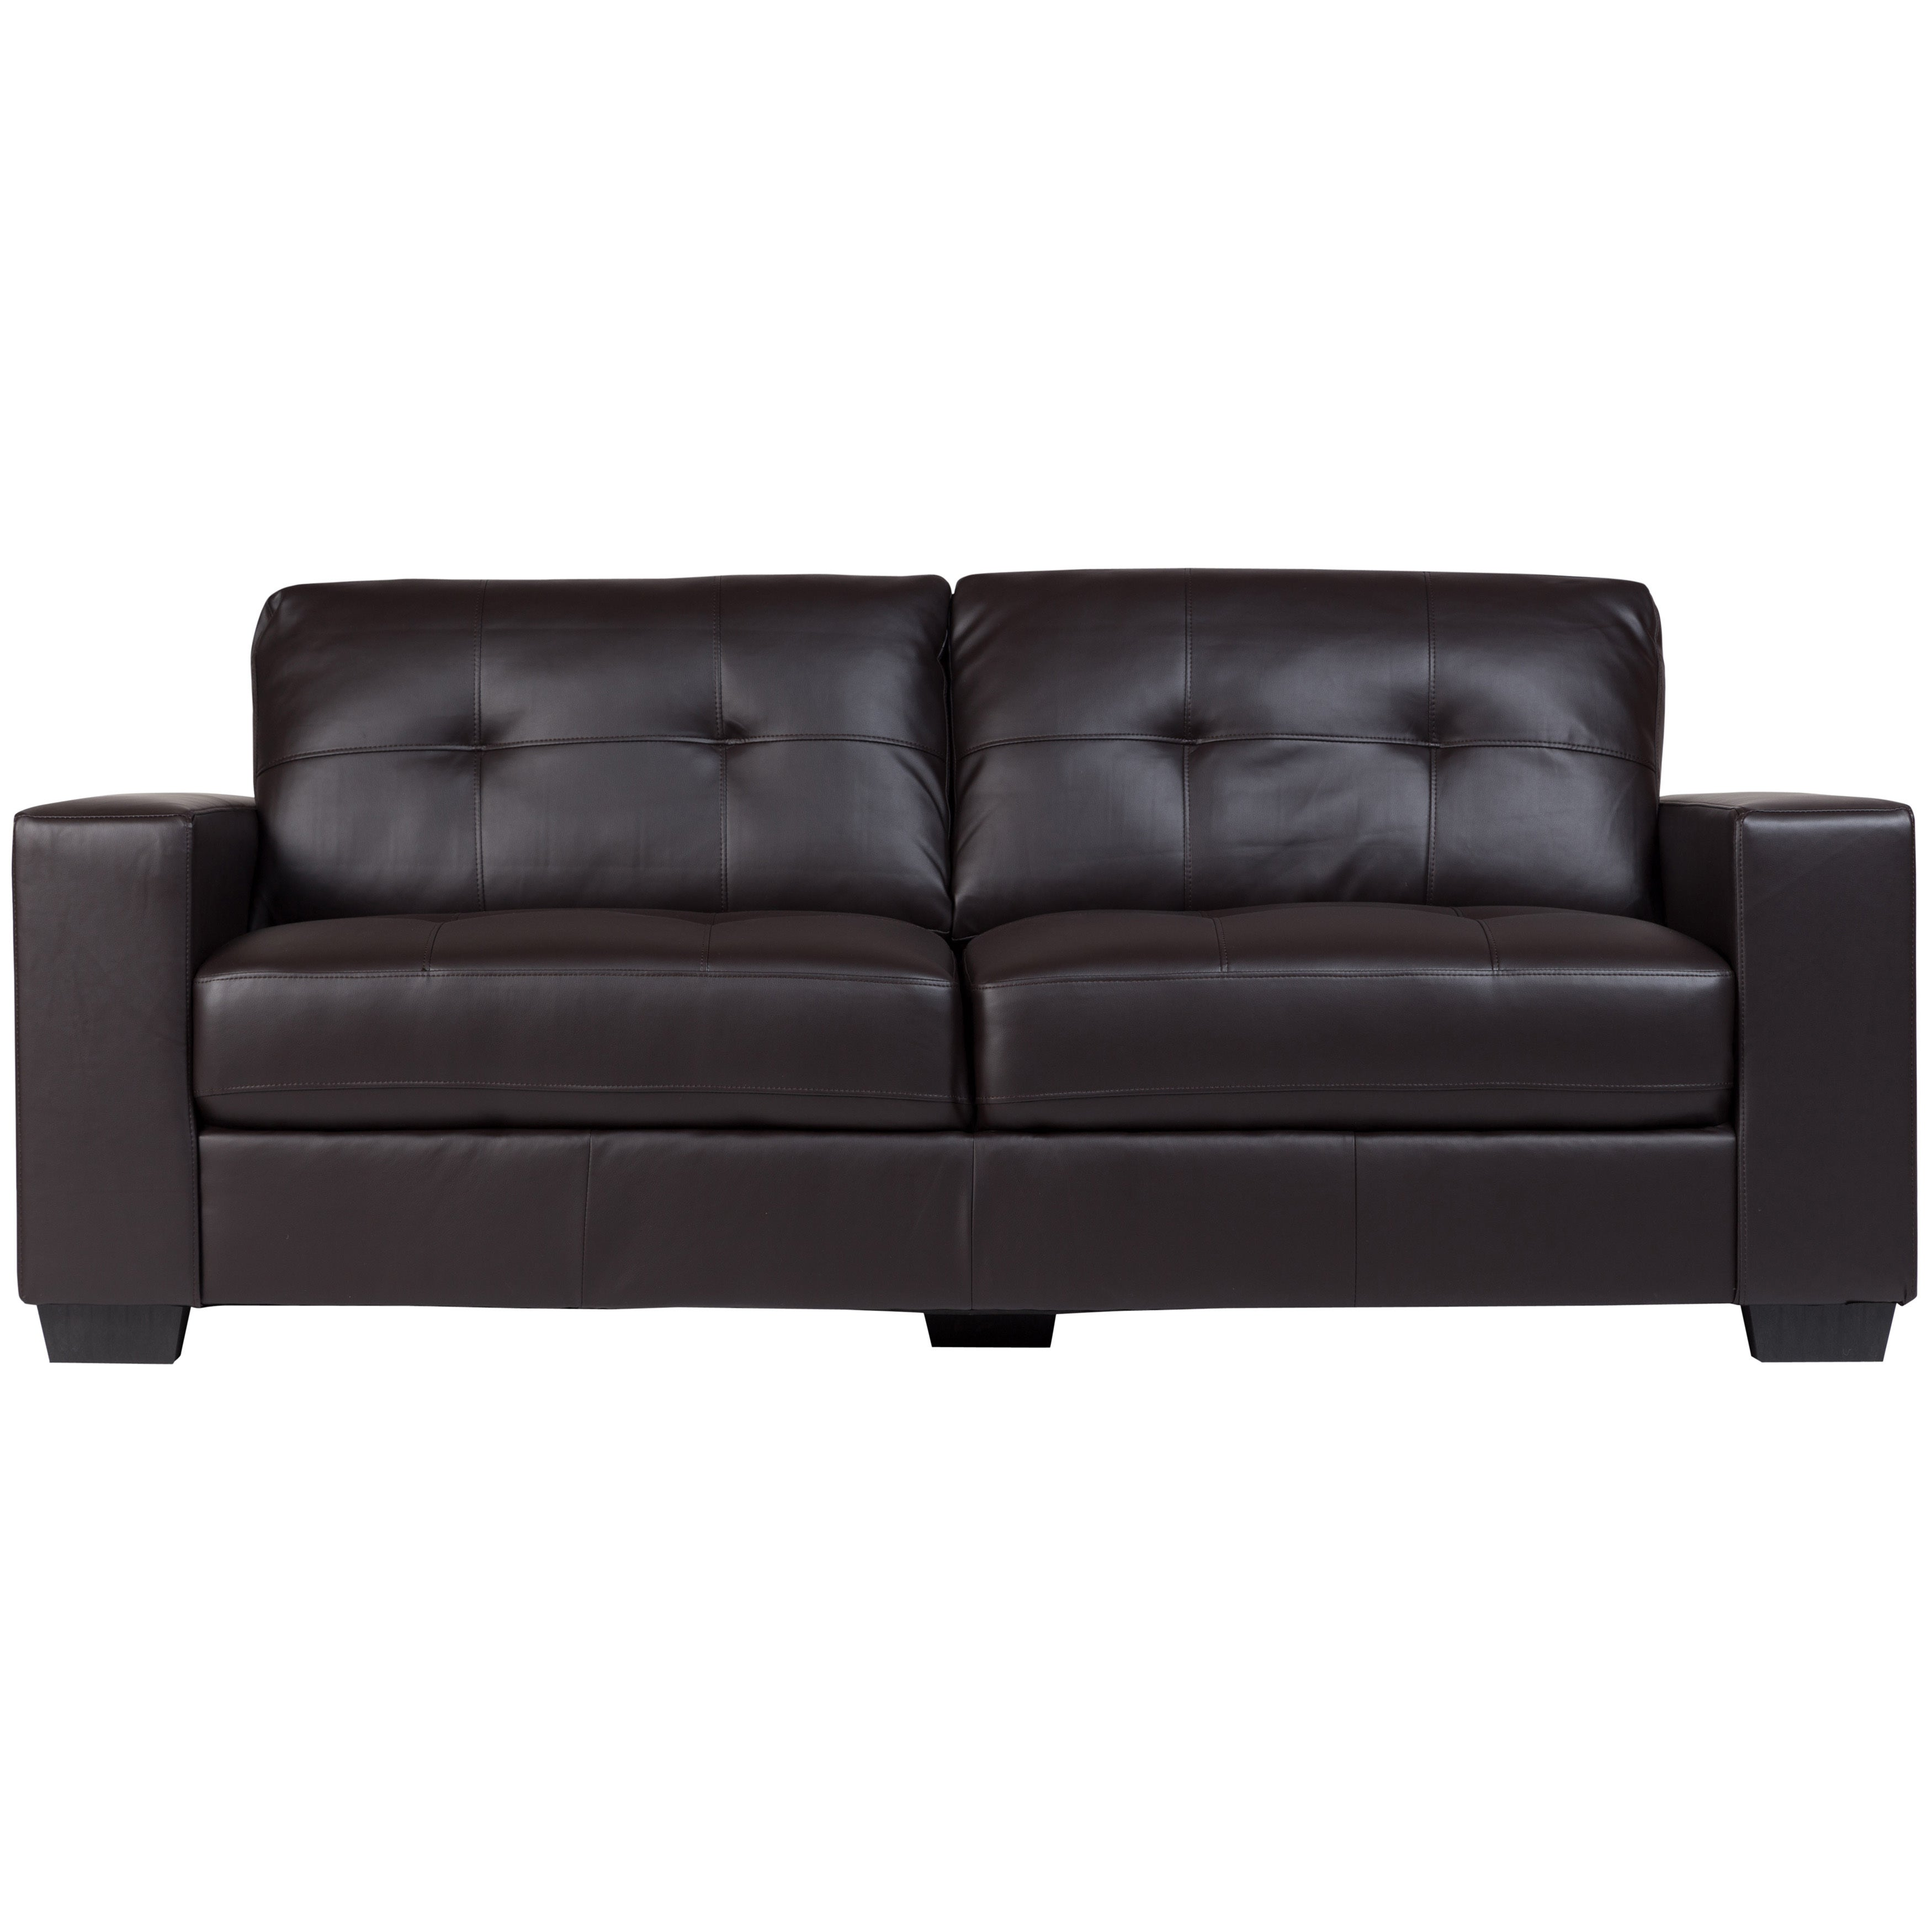 Porter Harper Brown Bonded Leather Modern Contemporary Tufted Sofa On Free Shipping Today 14582620